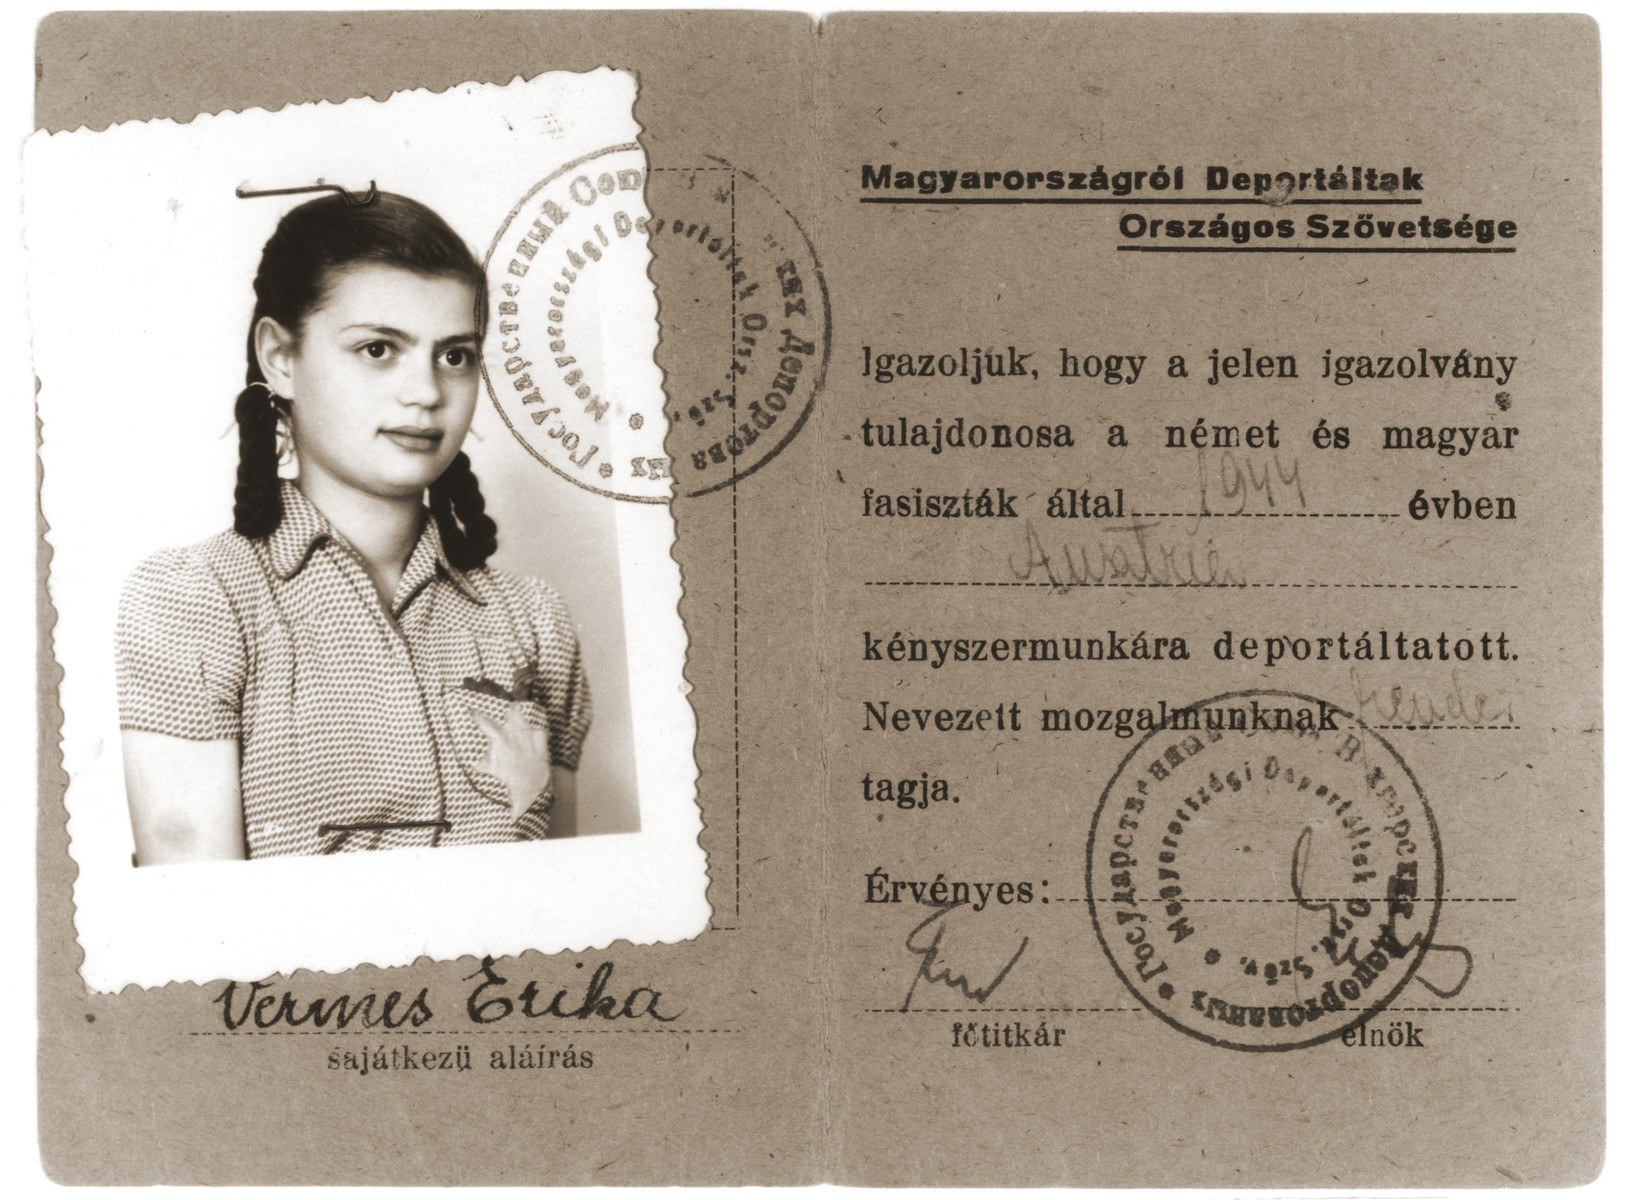 Postwar identification card certifying that Erika Vermes is a member of the National Alliance of People Deported from Hungary.  The photograph that is stapled to the card was taken in 1944 and shows Erika wearing the yellow star.  The ID card, which bears both Hungarian and Russian stamps, states that Erika Vermes was deported to Austria in 1944 by German and Hungarian fascists to perform forced labor.  Erika, in fact, was never deported to Austria.  She appropriated her mother's story in order to qualify for food rations.